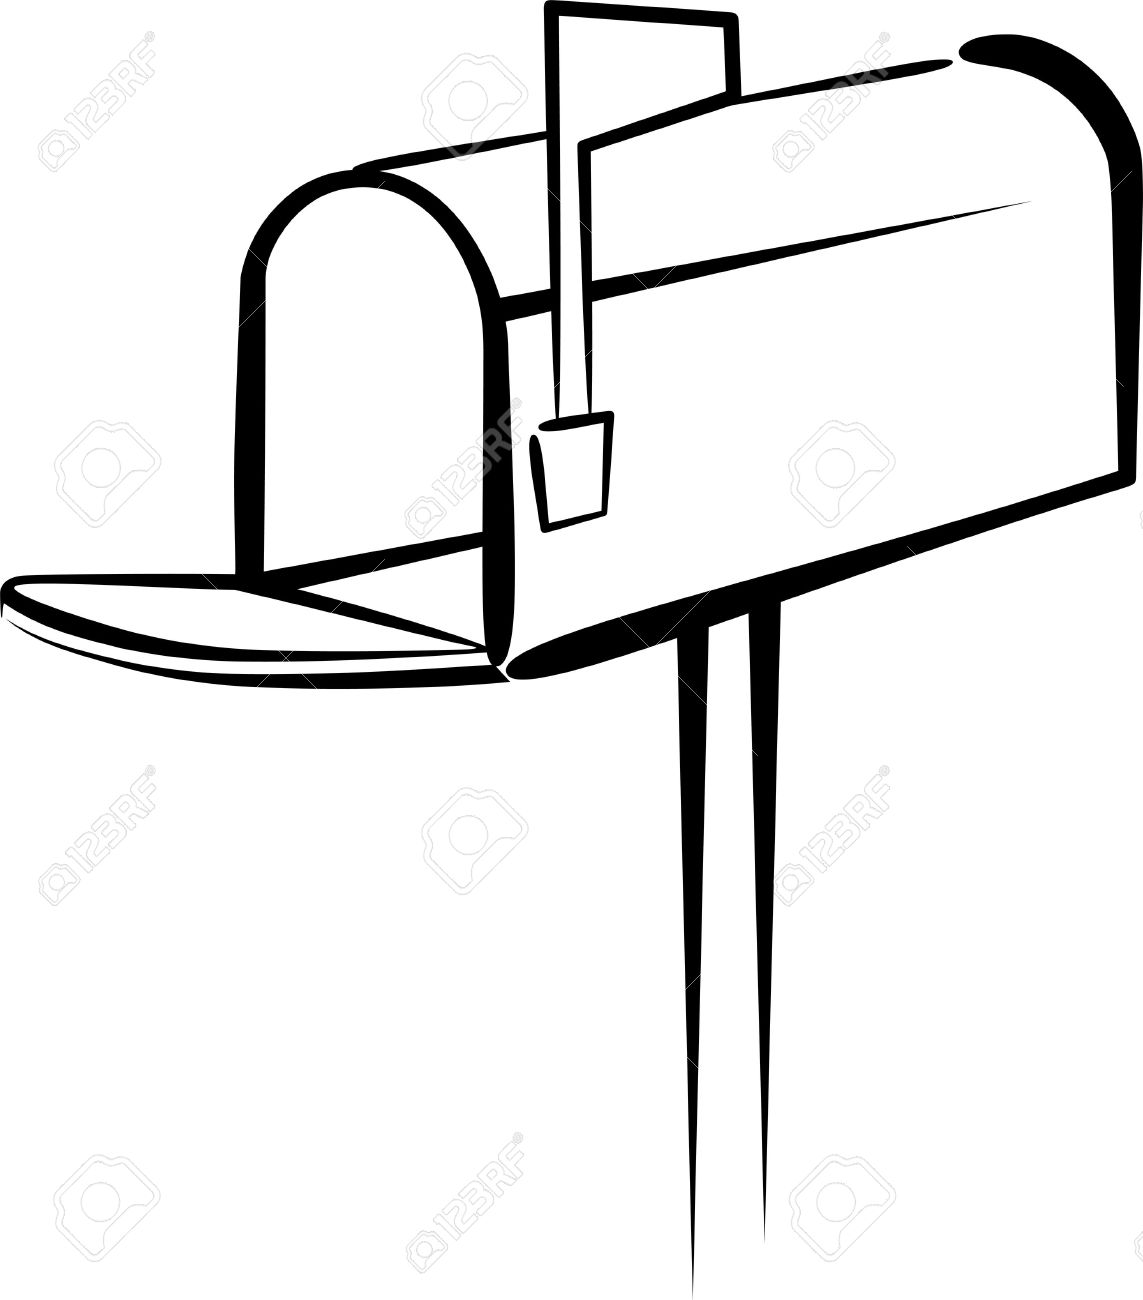 with a mailbox